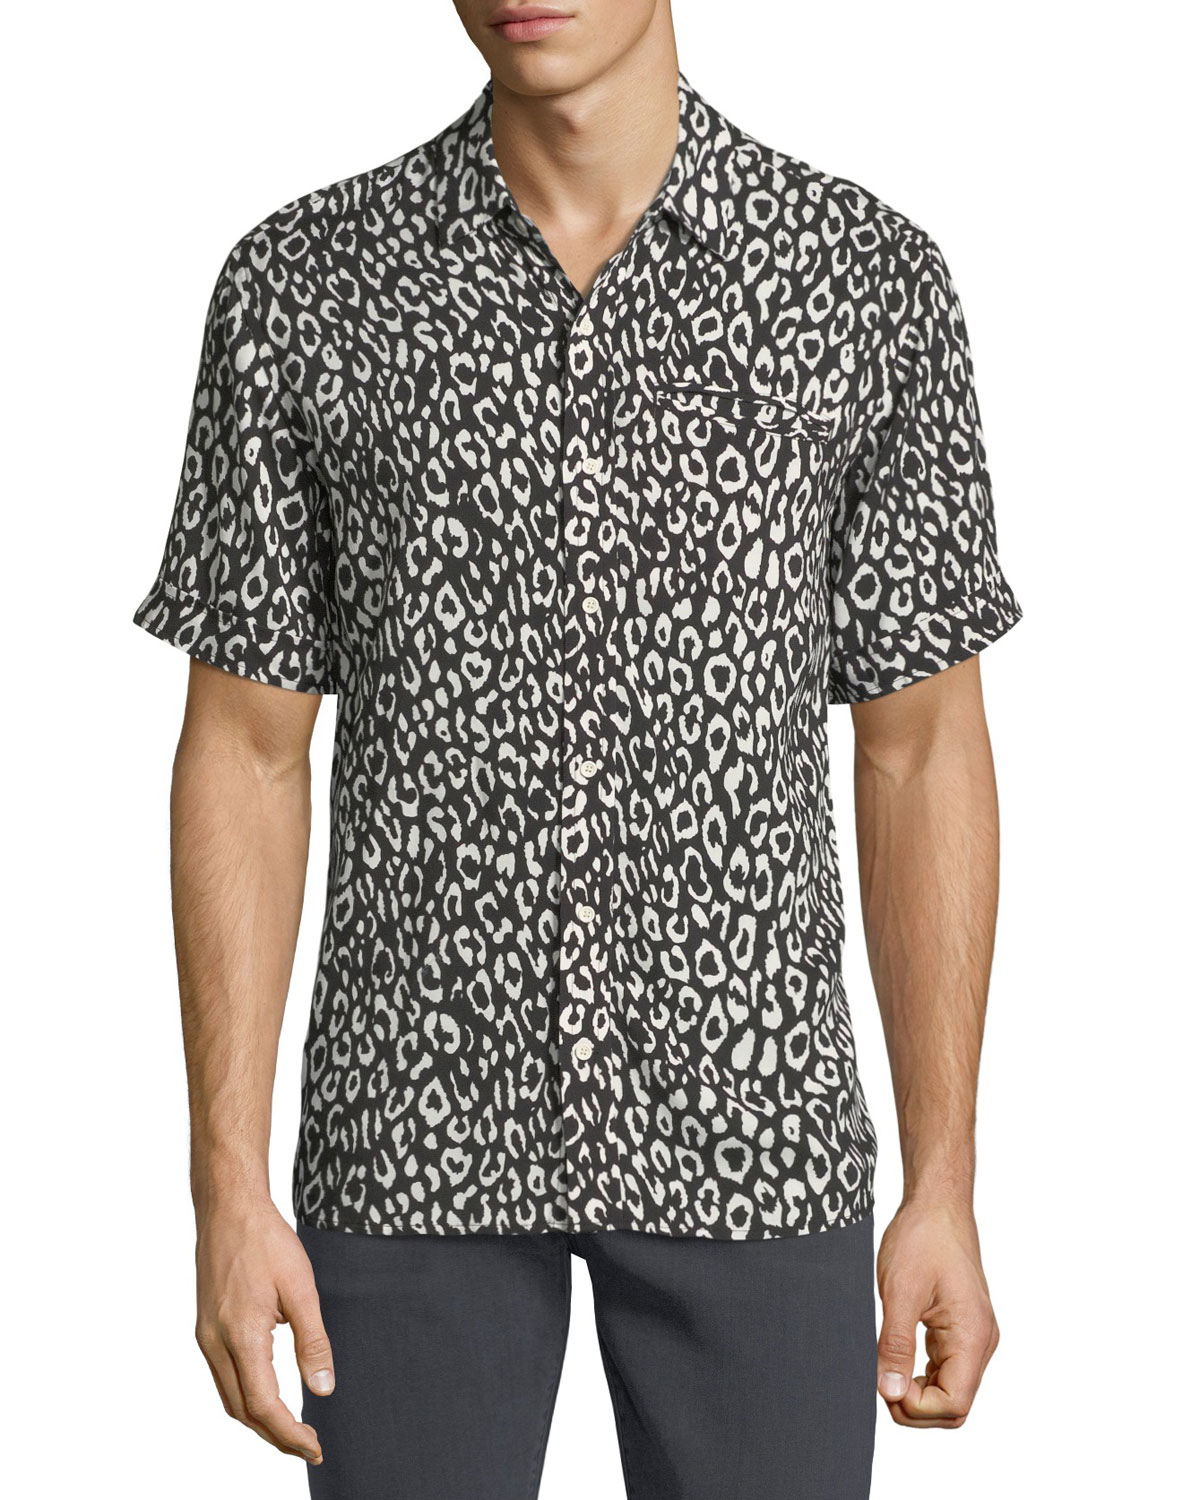 Camp Leopard-Print Short-Sleeve Shirt